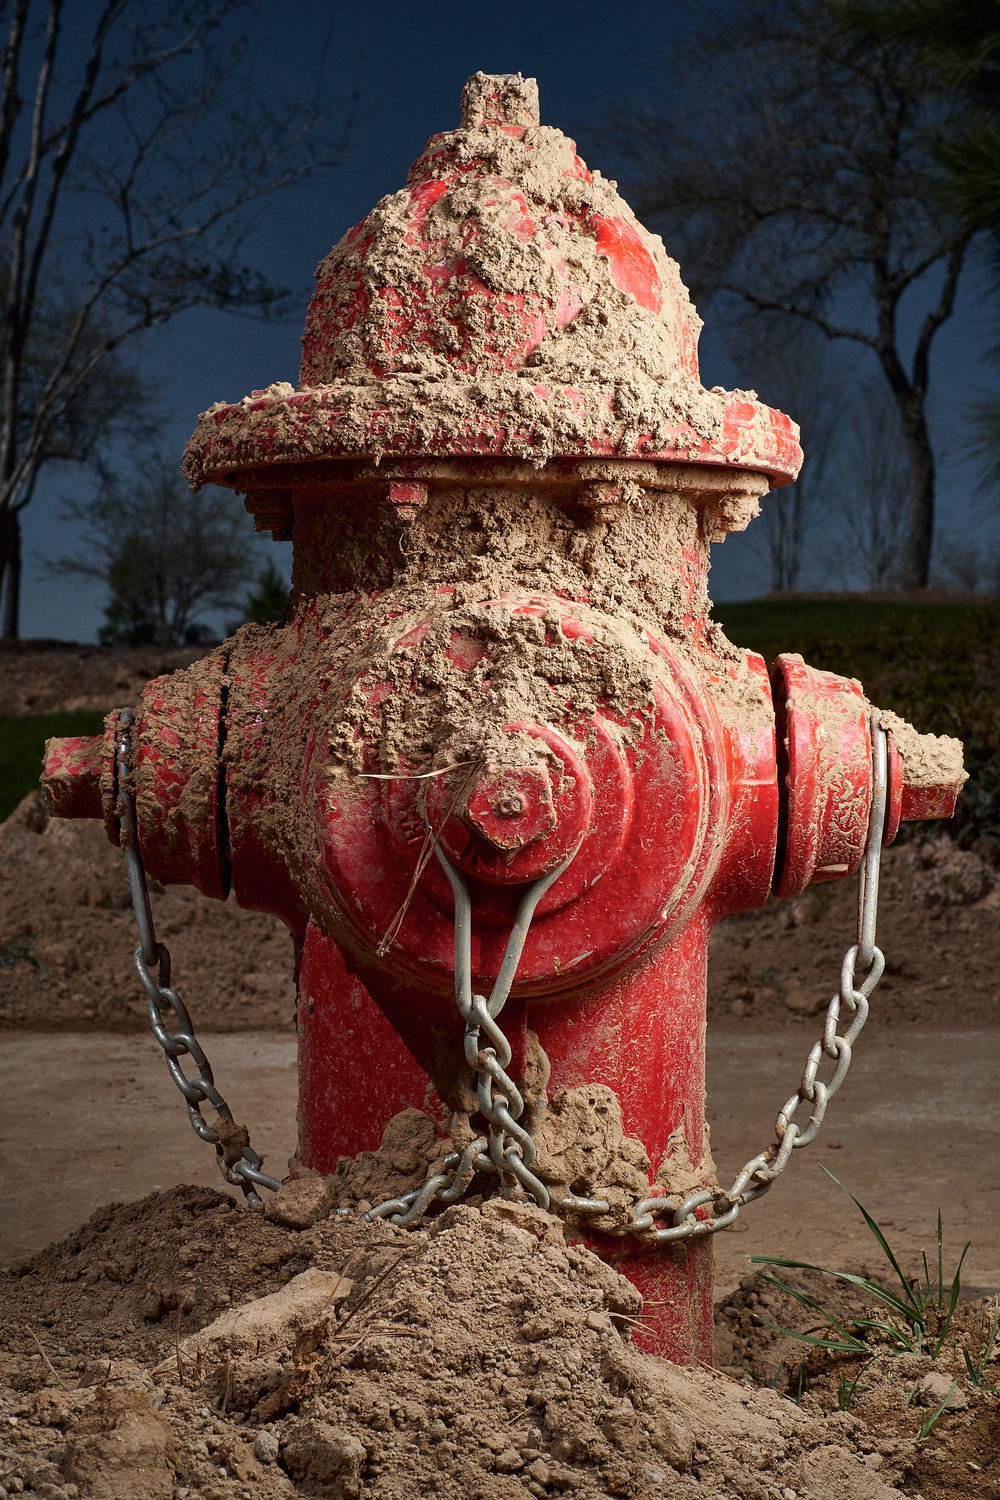 Hydrant Portrait #34